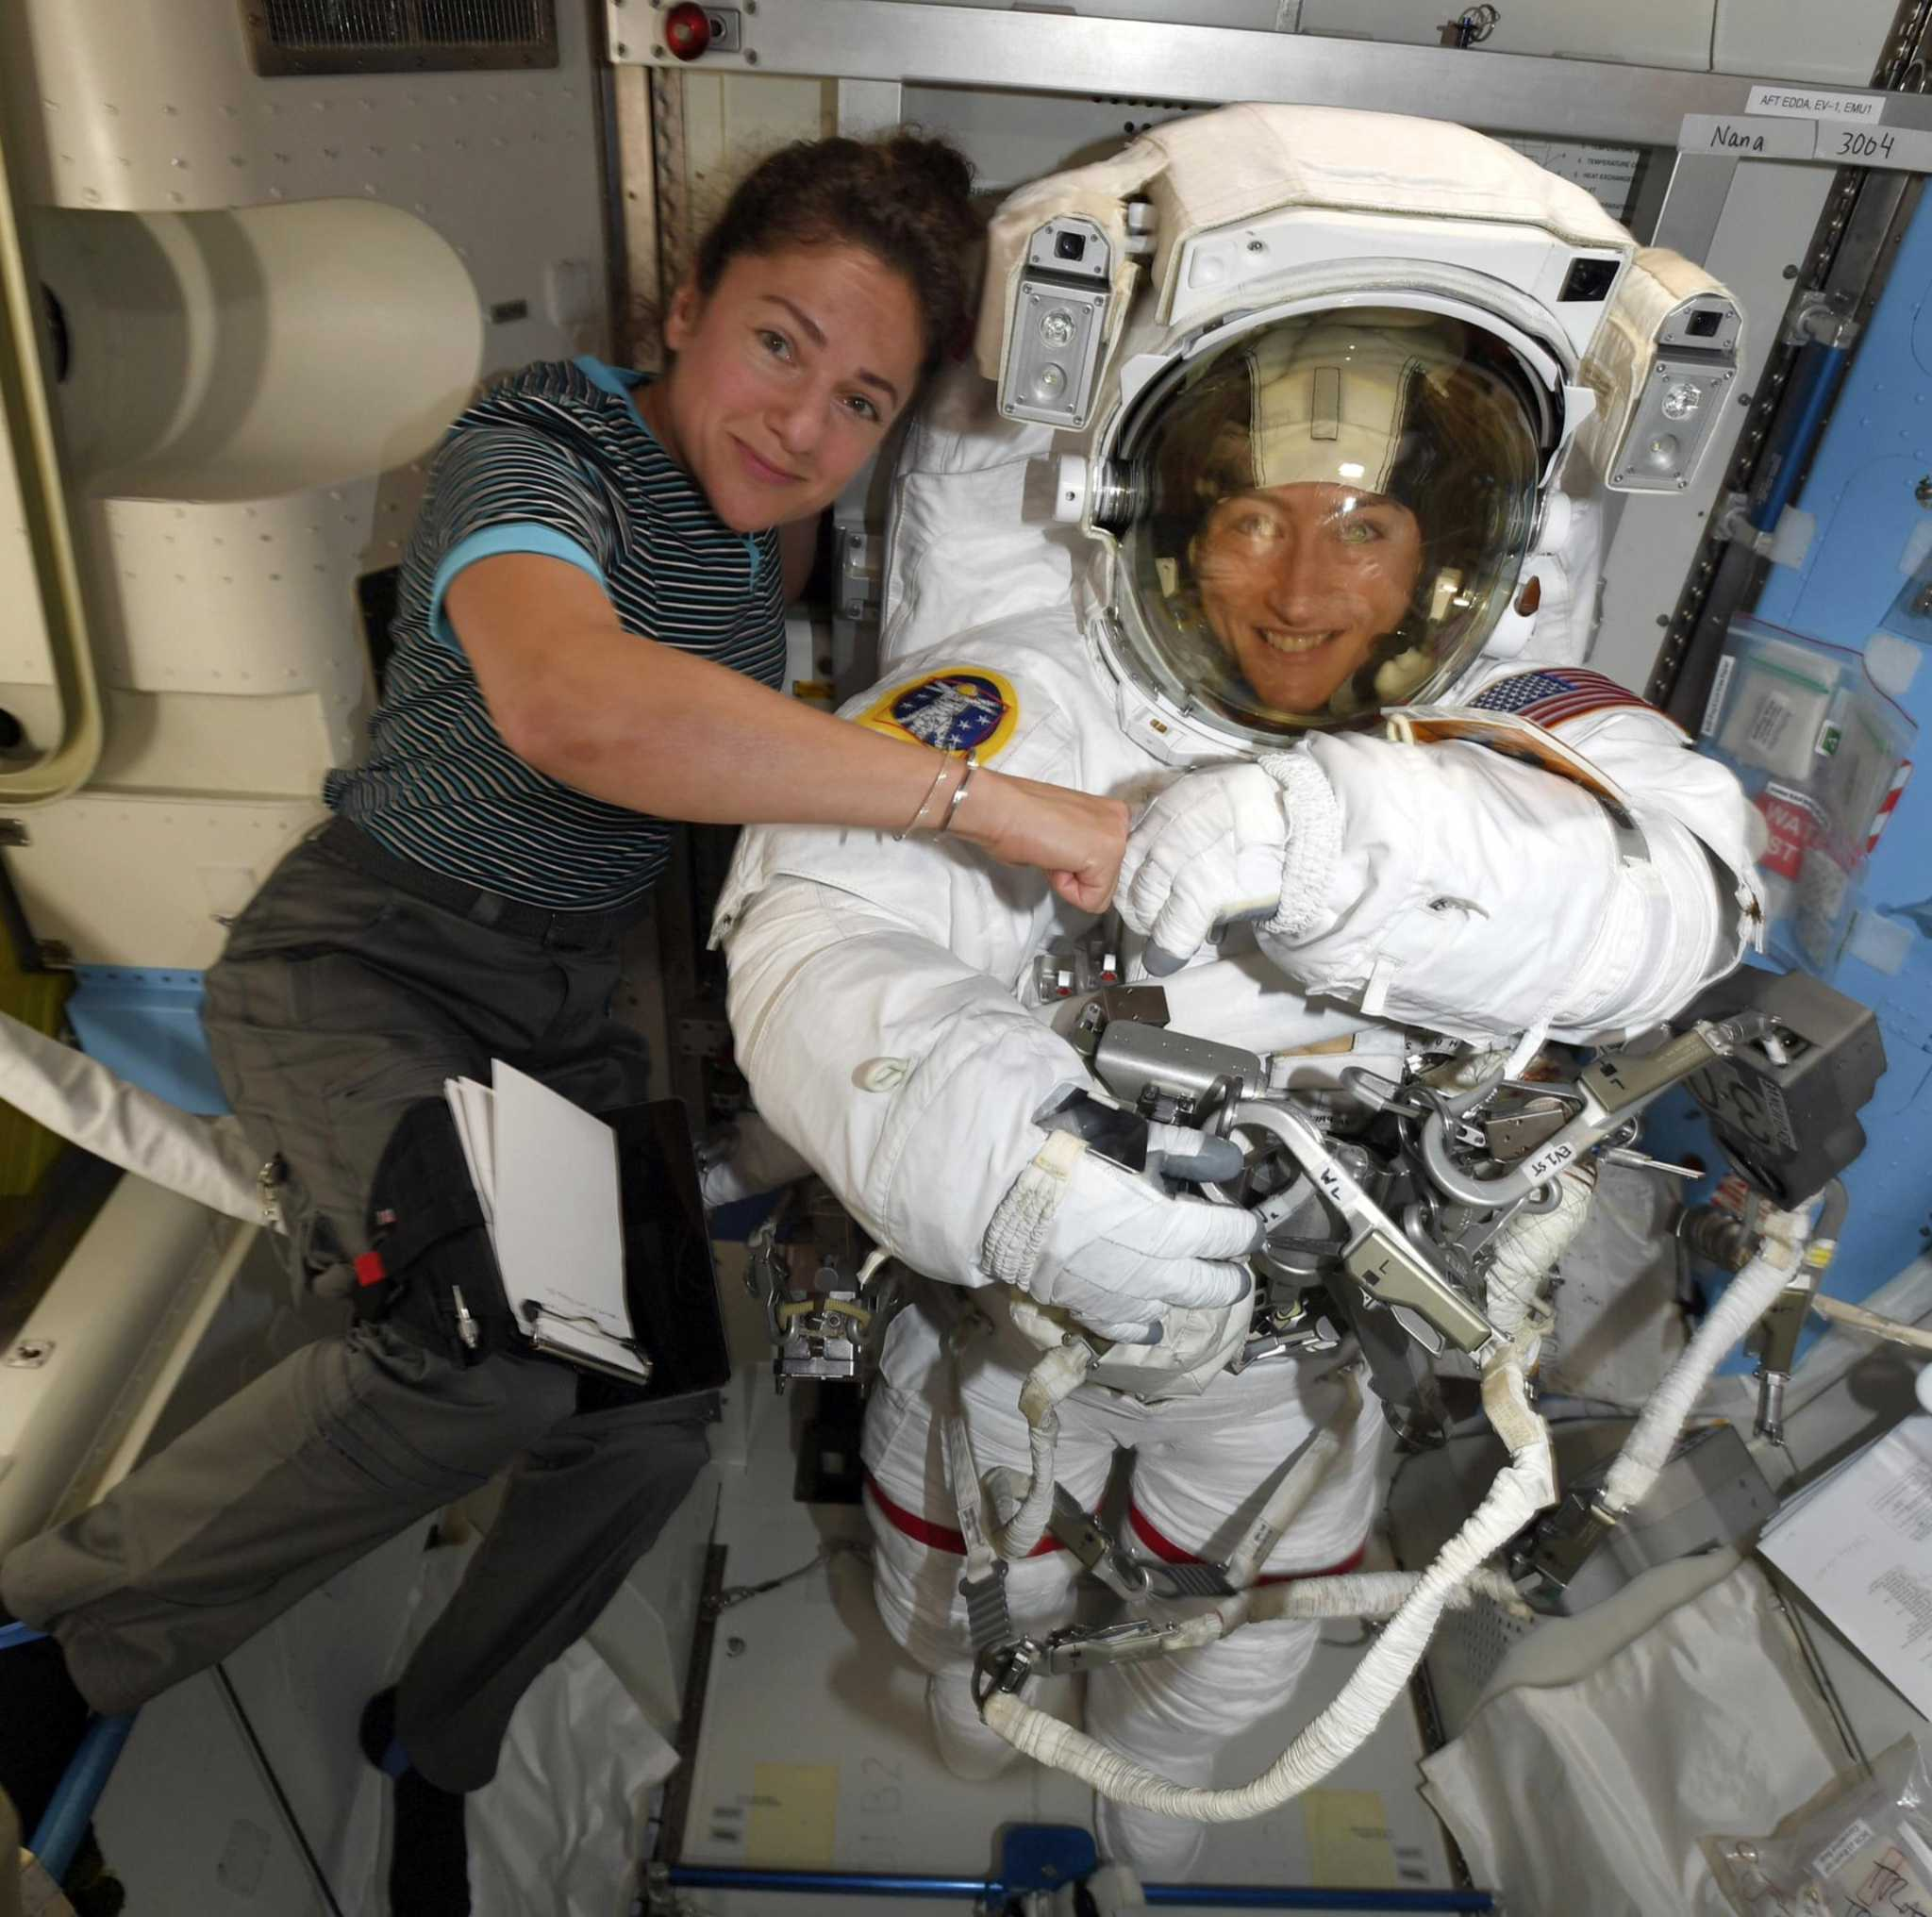 NASA astronauts are Guinness World Record holders for all-female spacewalk